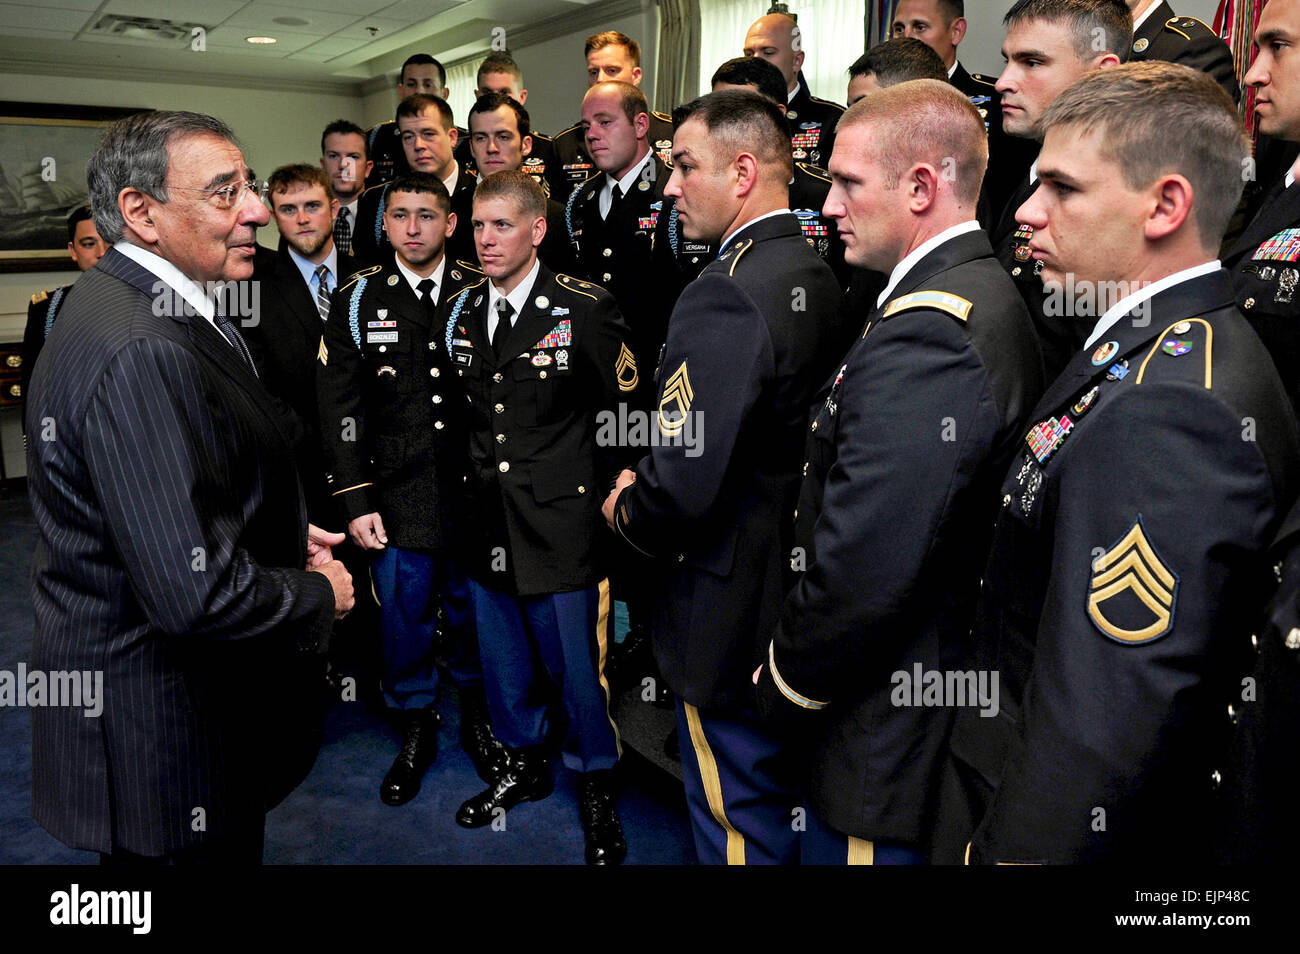 Members of the 75th Ranger Regiment who served with Medal of Honor recipient Sgt. 1st Class Leroy Petry in Afghanistan - Stock Image